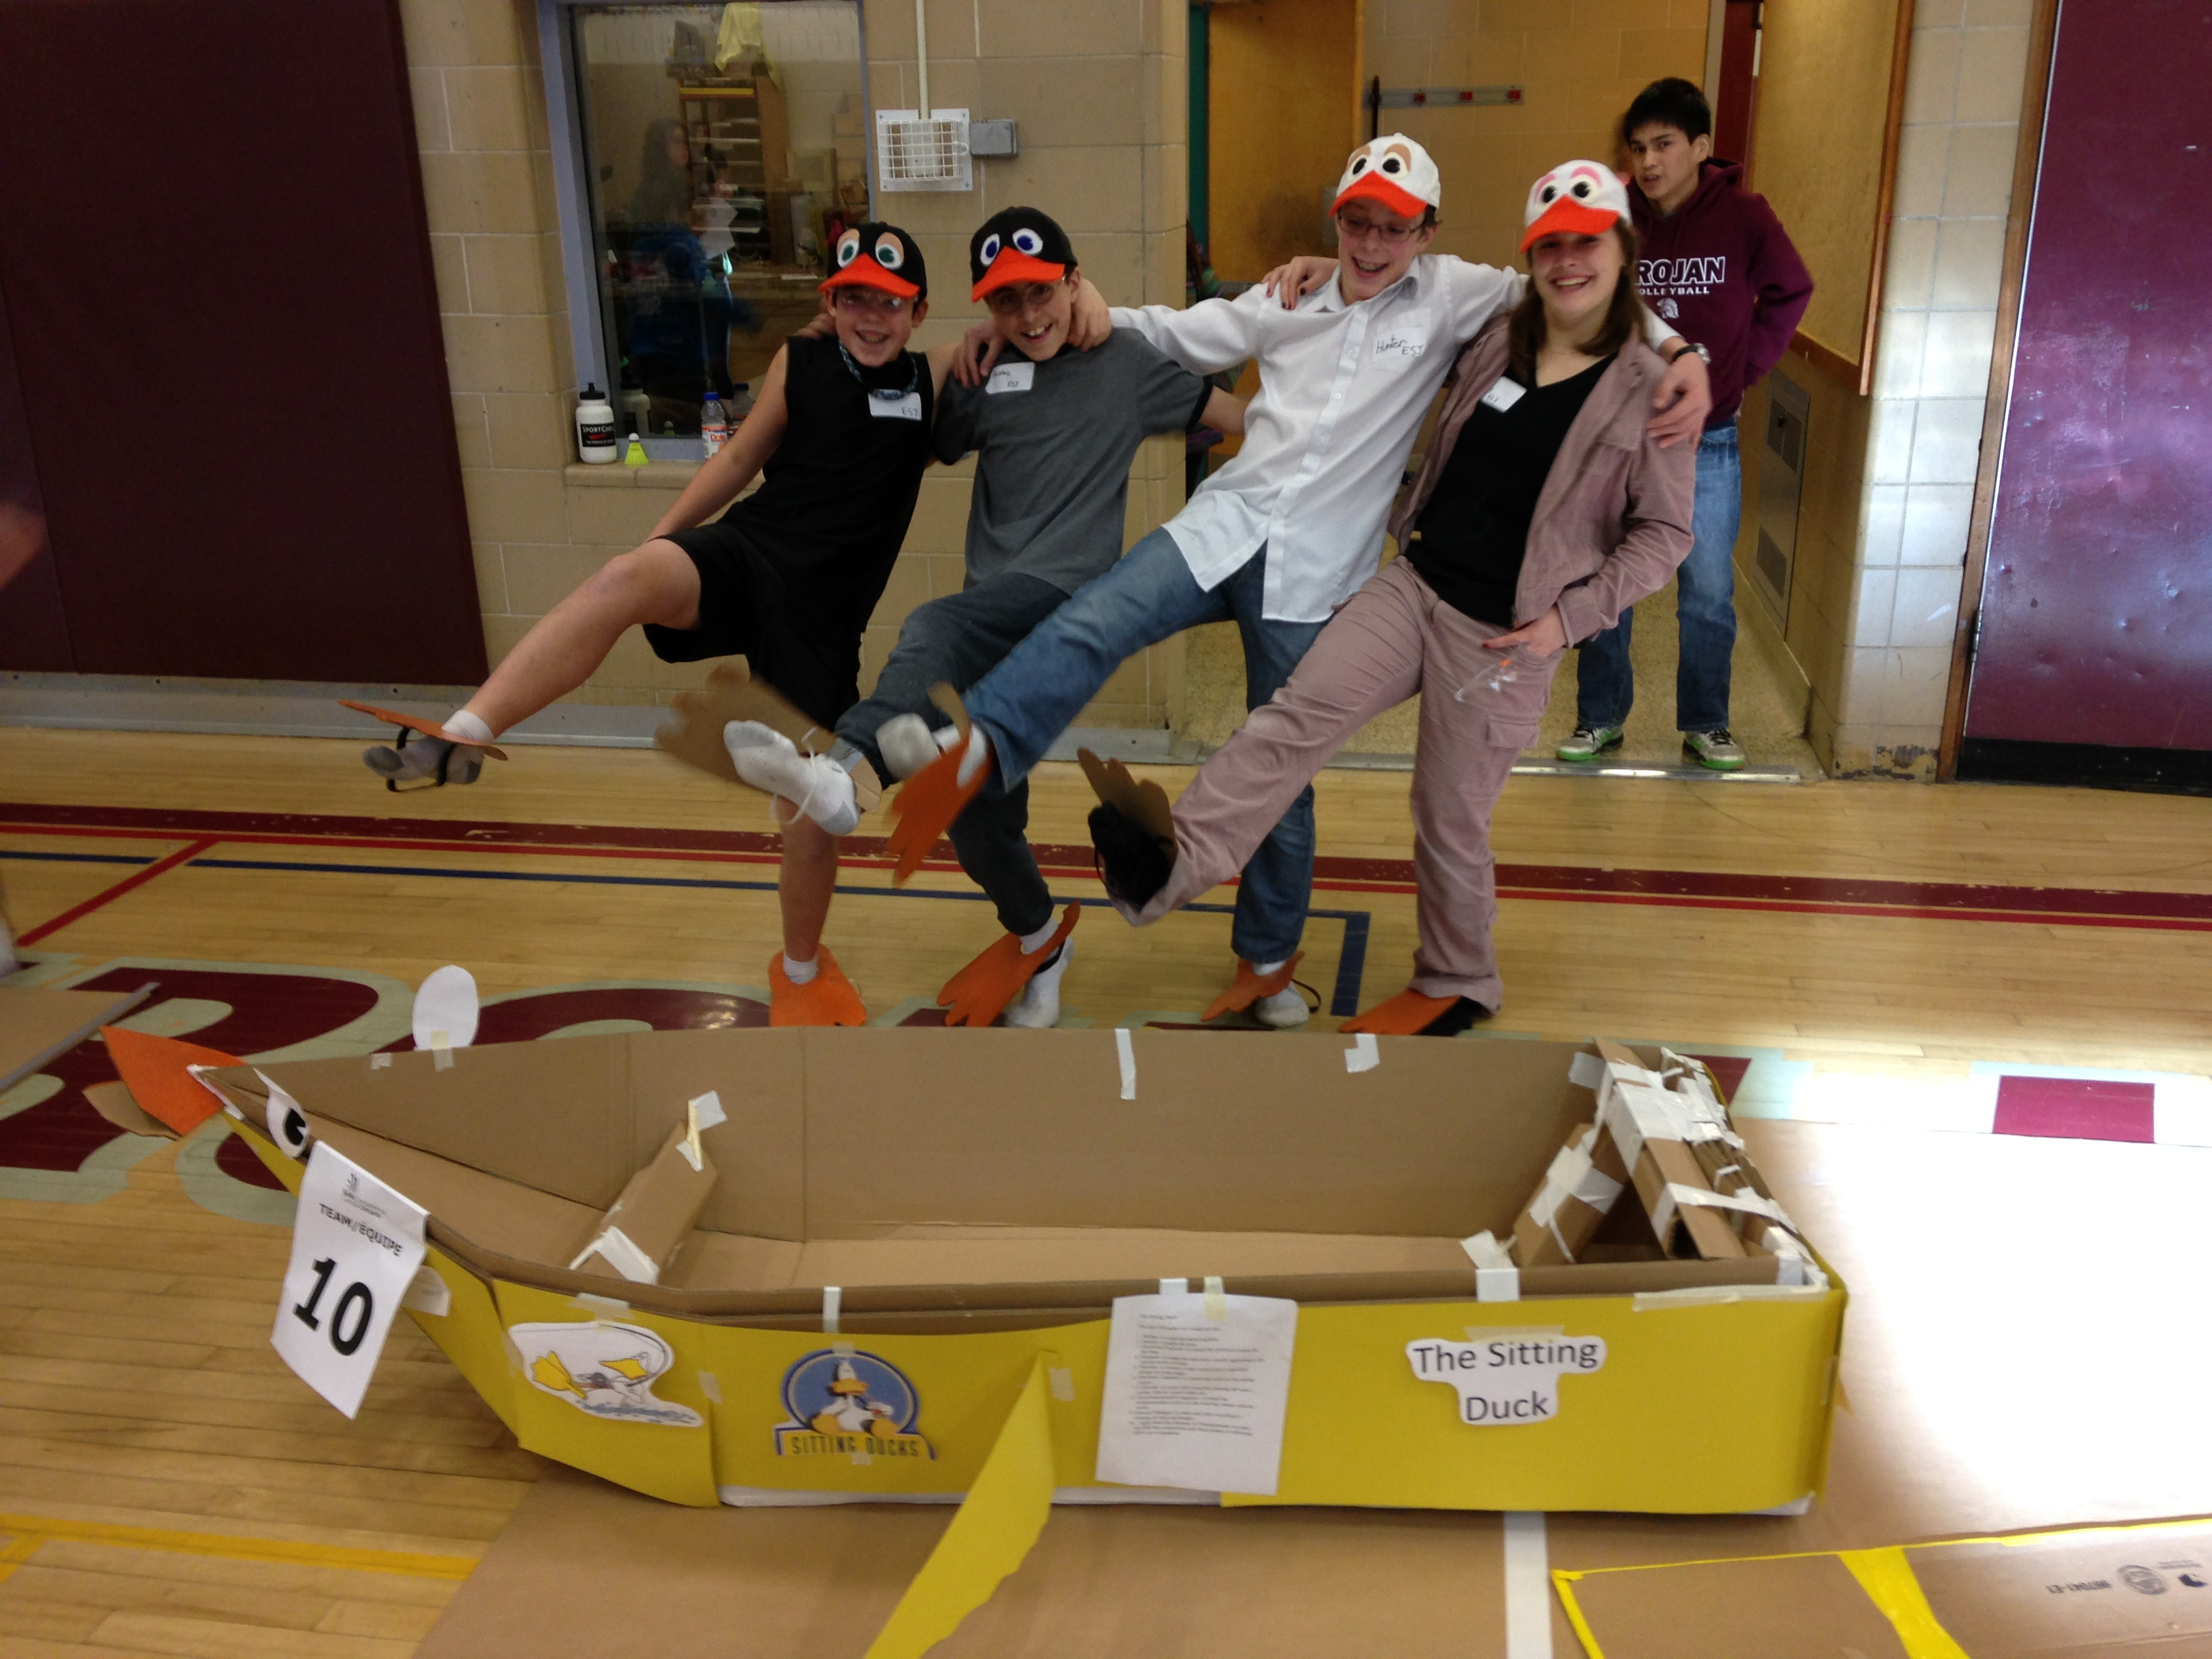 One Of Cscnos Carboard Boat Racing Teams Photo Cscno